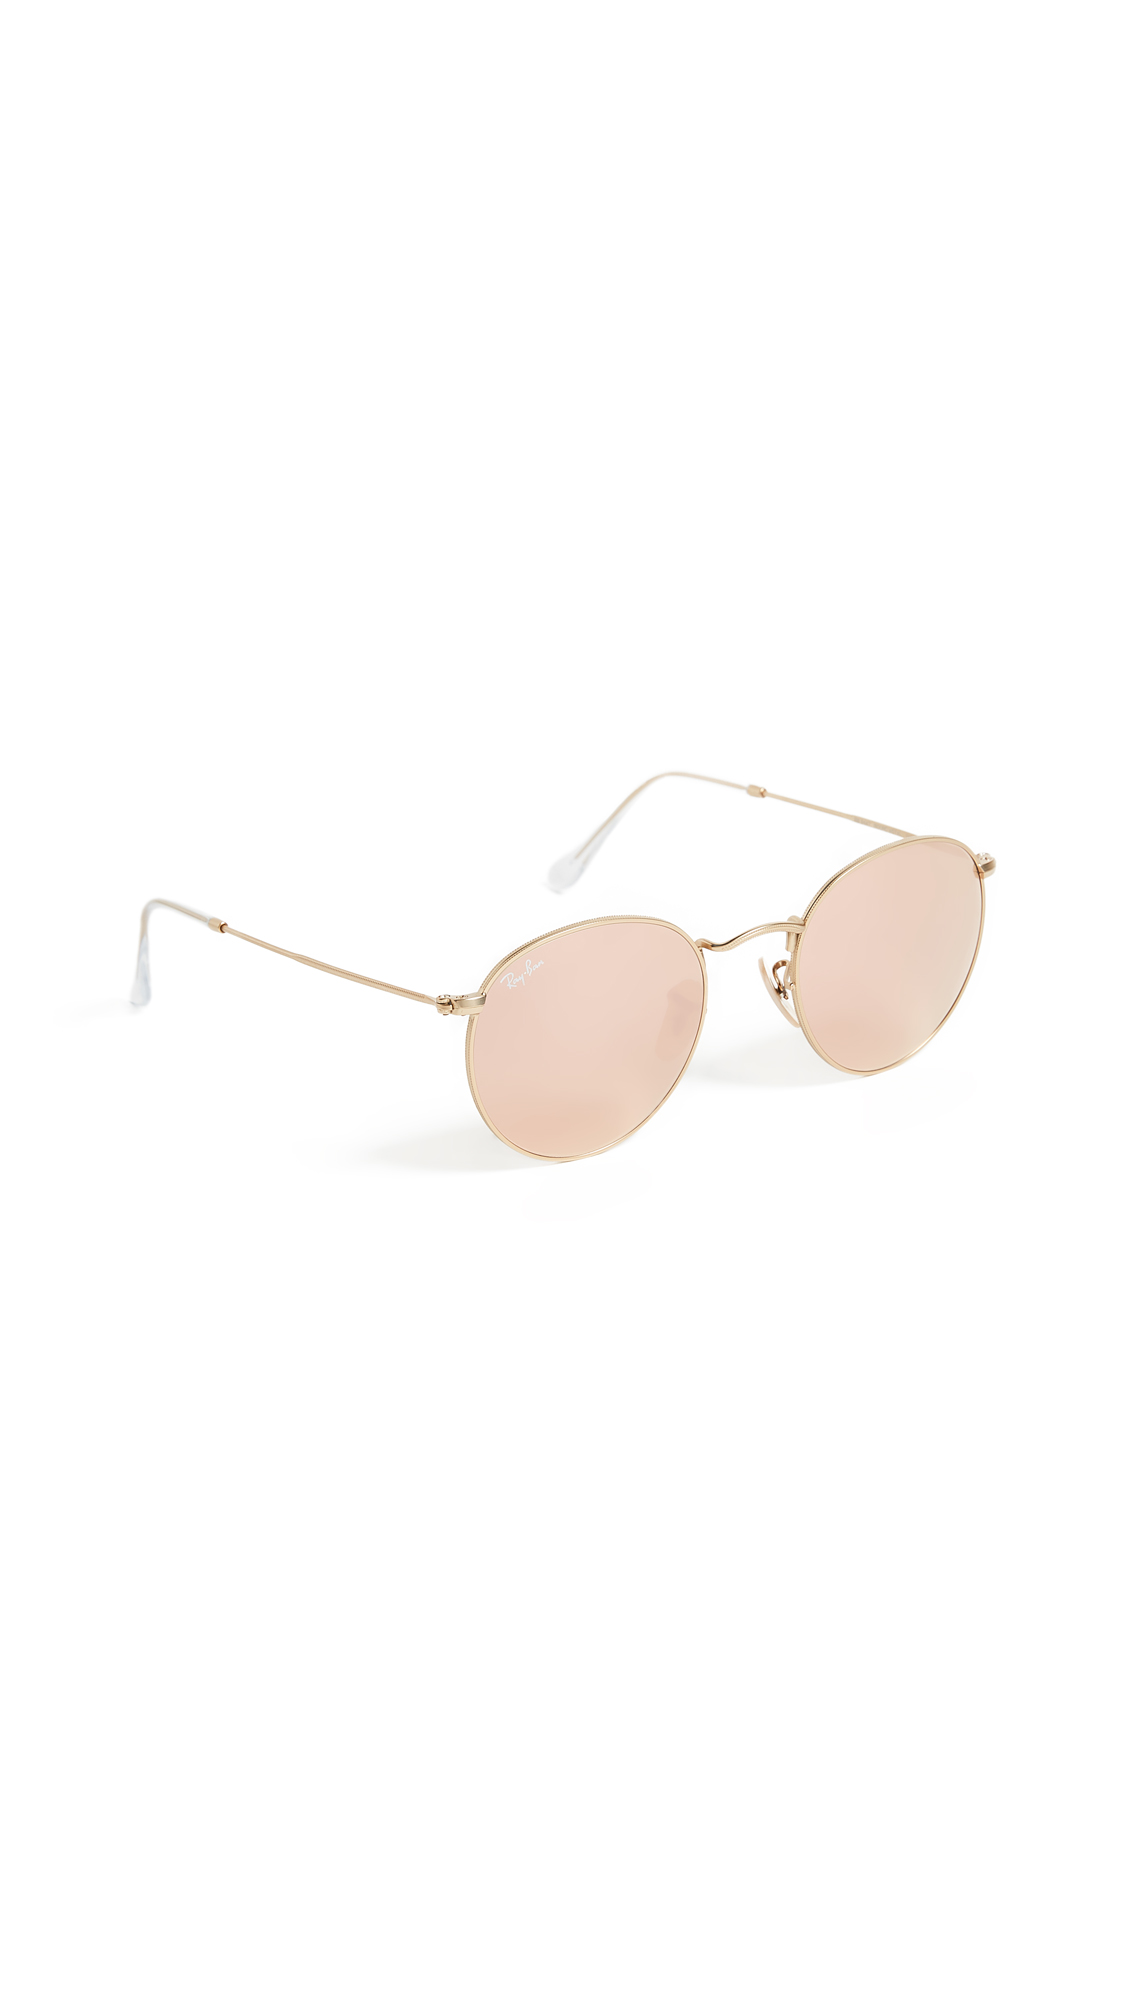 Ray-Ban Icons Mirrored Sunglasses In Matte Gold/Brown Mirror Pink